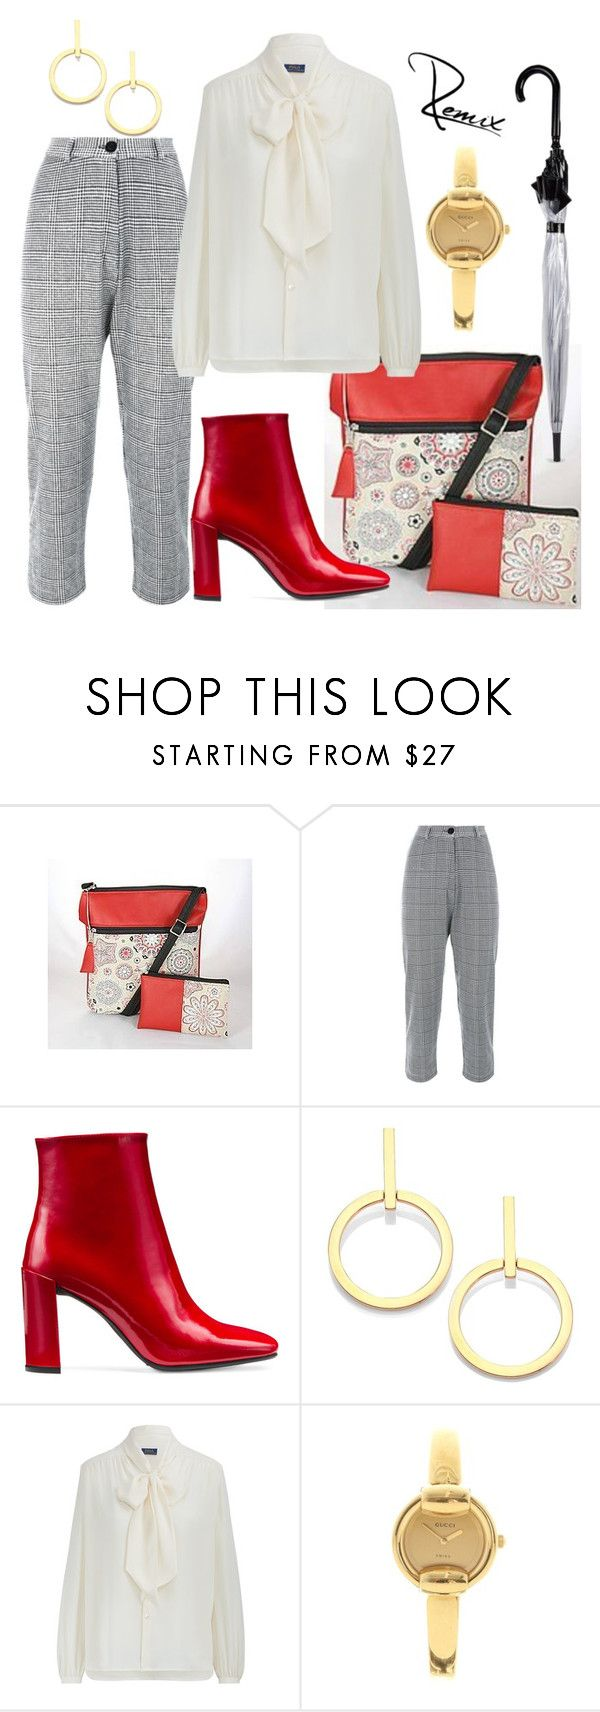 """Rainy workdays"" by aleva on Polyvore featuring Stuart Weitzman, Vita Fede, Gucci and Fulton"